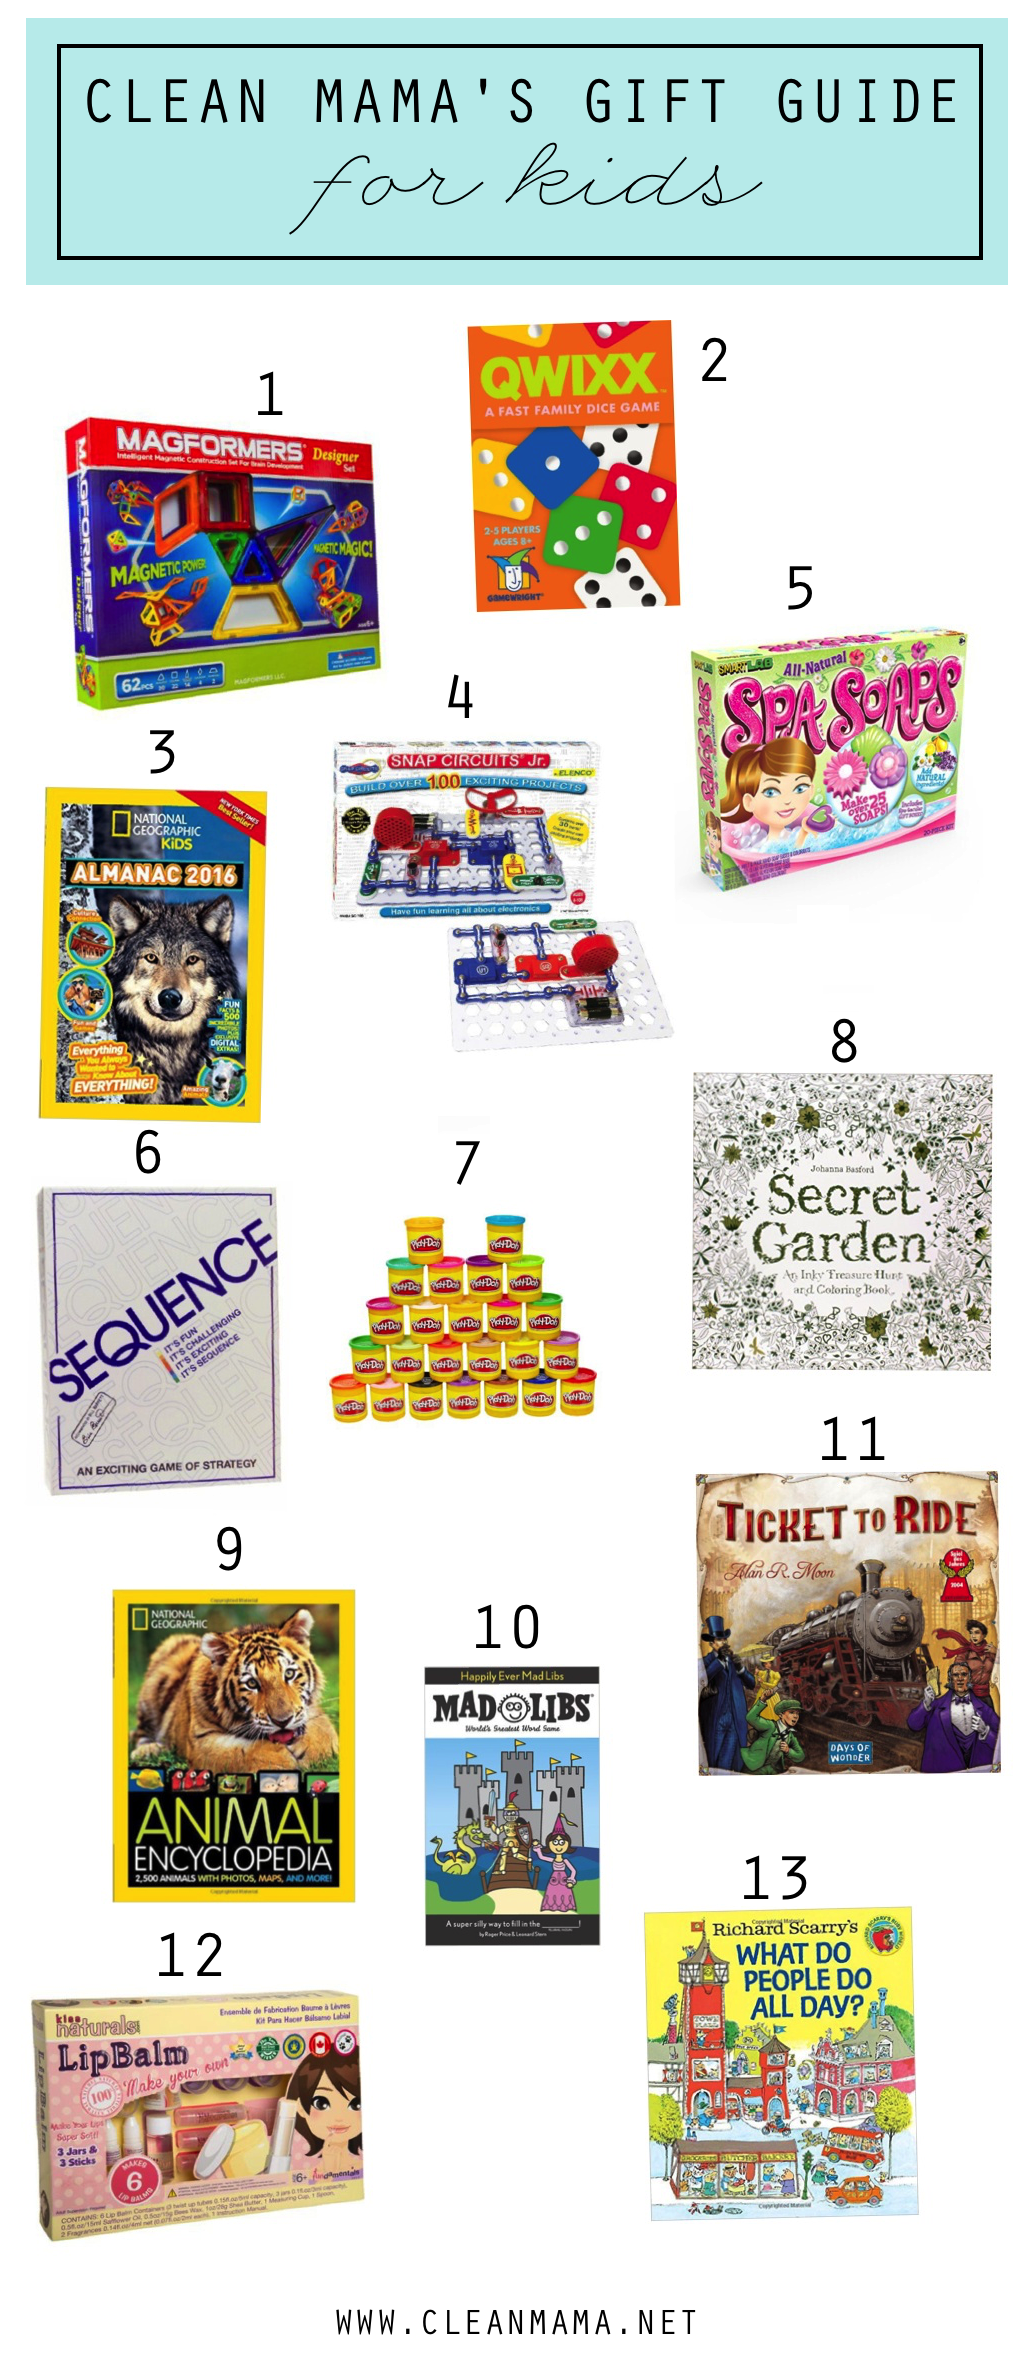 Clean Mama's Gift Guide for Kids